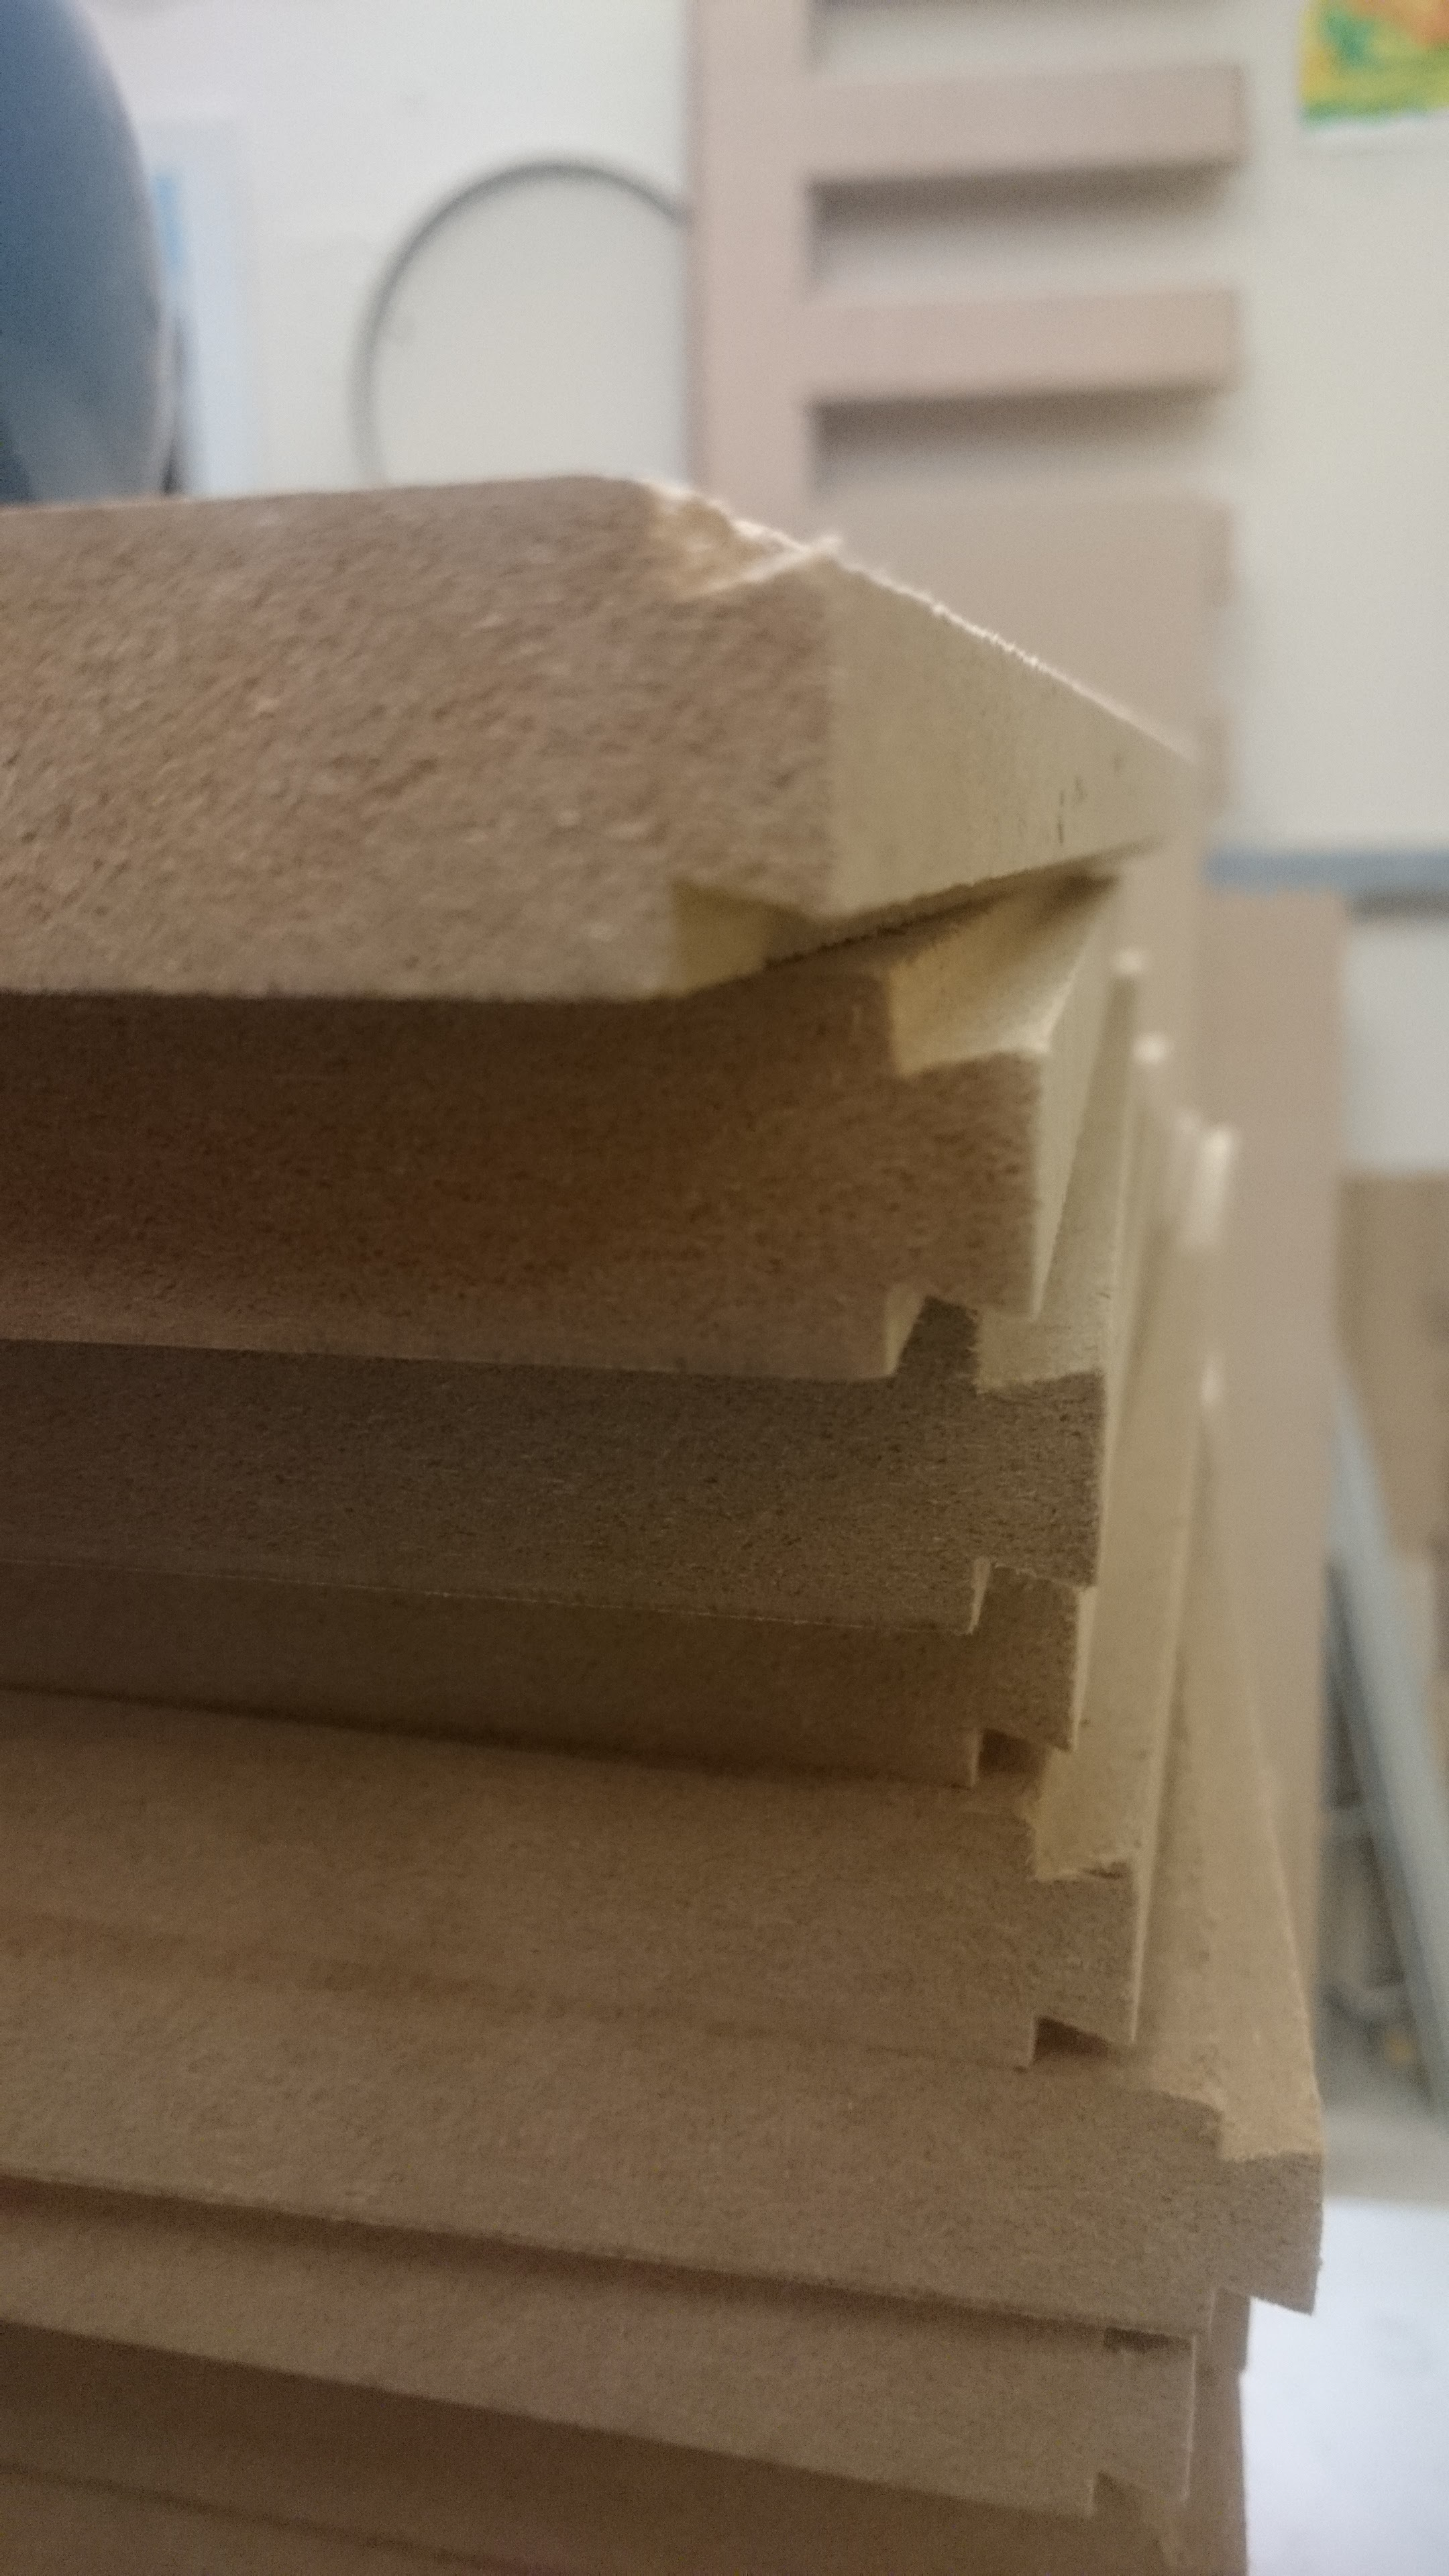 Shelves stacked together, all of the ends were cut on a router table, vertically against the fence. The fence is adjusted to get a tight fit through trial and error.